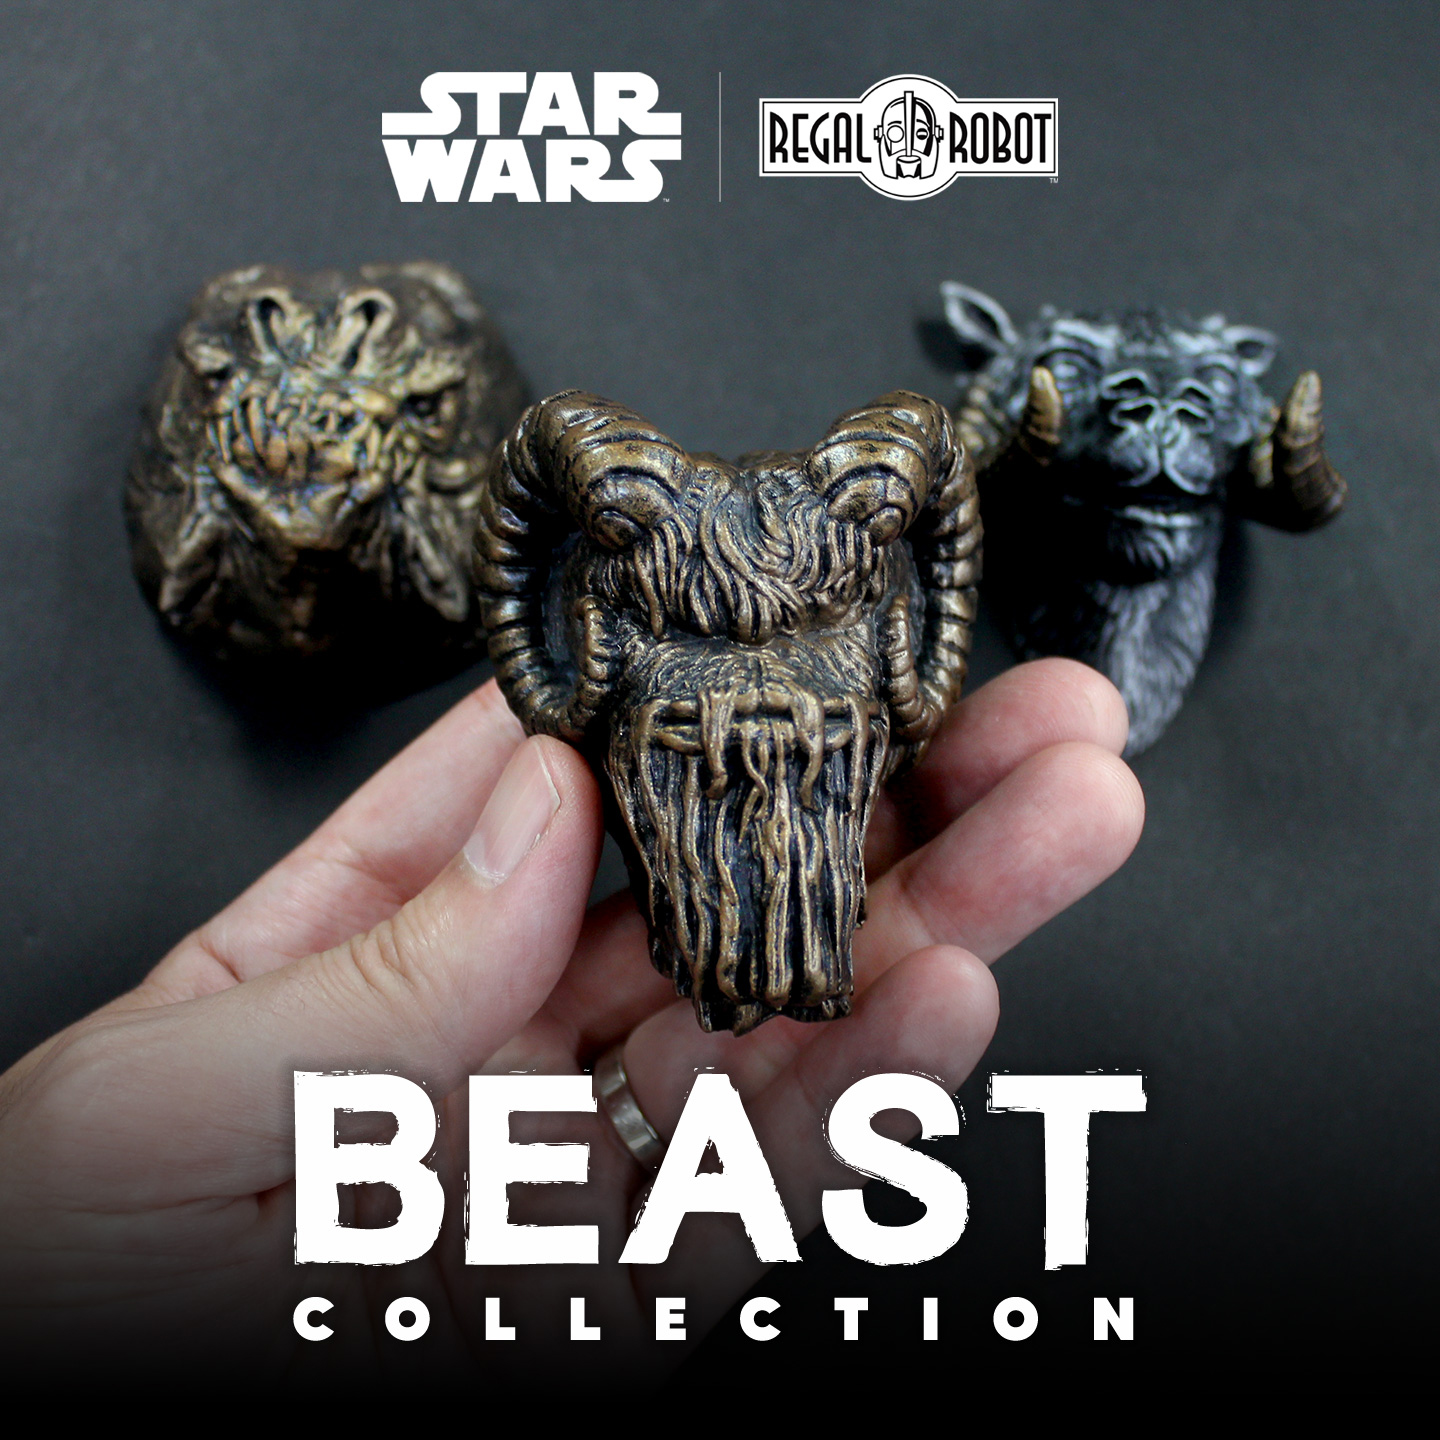 Star Wars Magnets from Regal Robot's Beast Collection